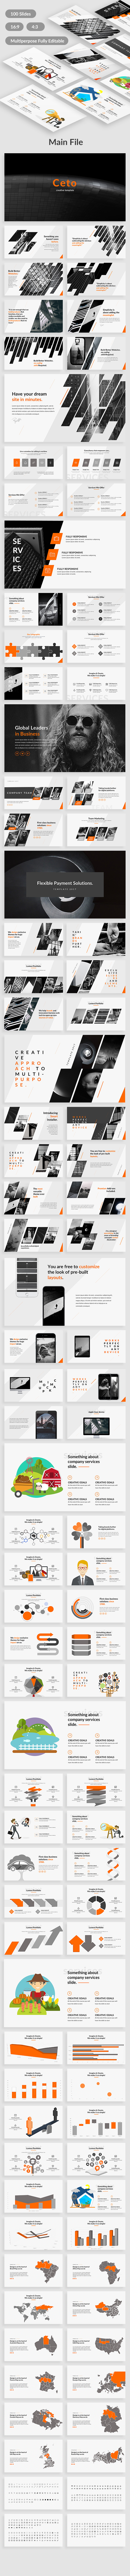 Ceto Premium Multipurpose Powerpoint Template - Creative PowerPoint Templates